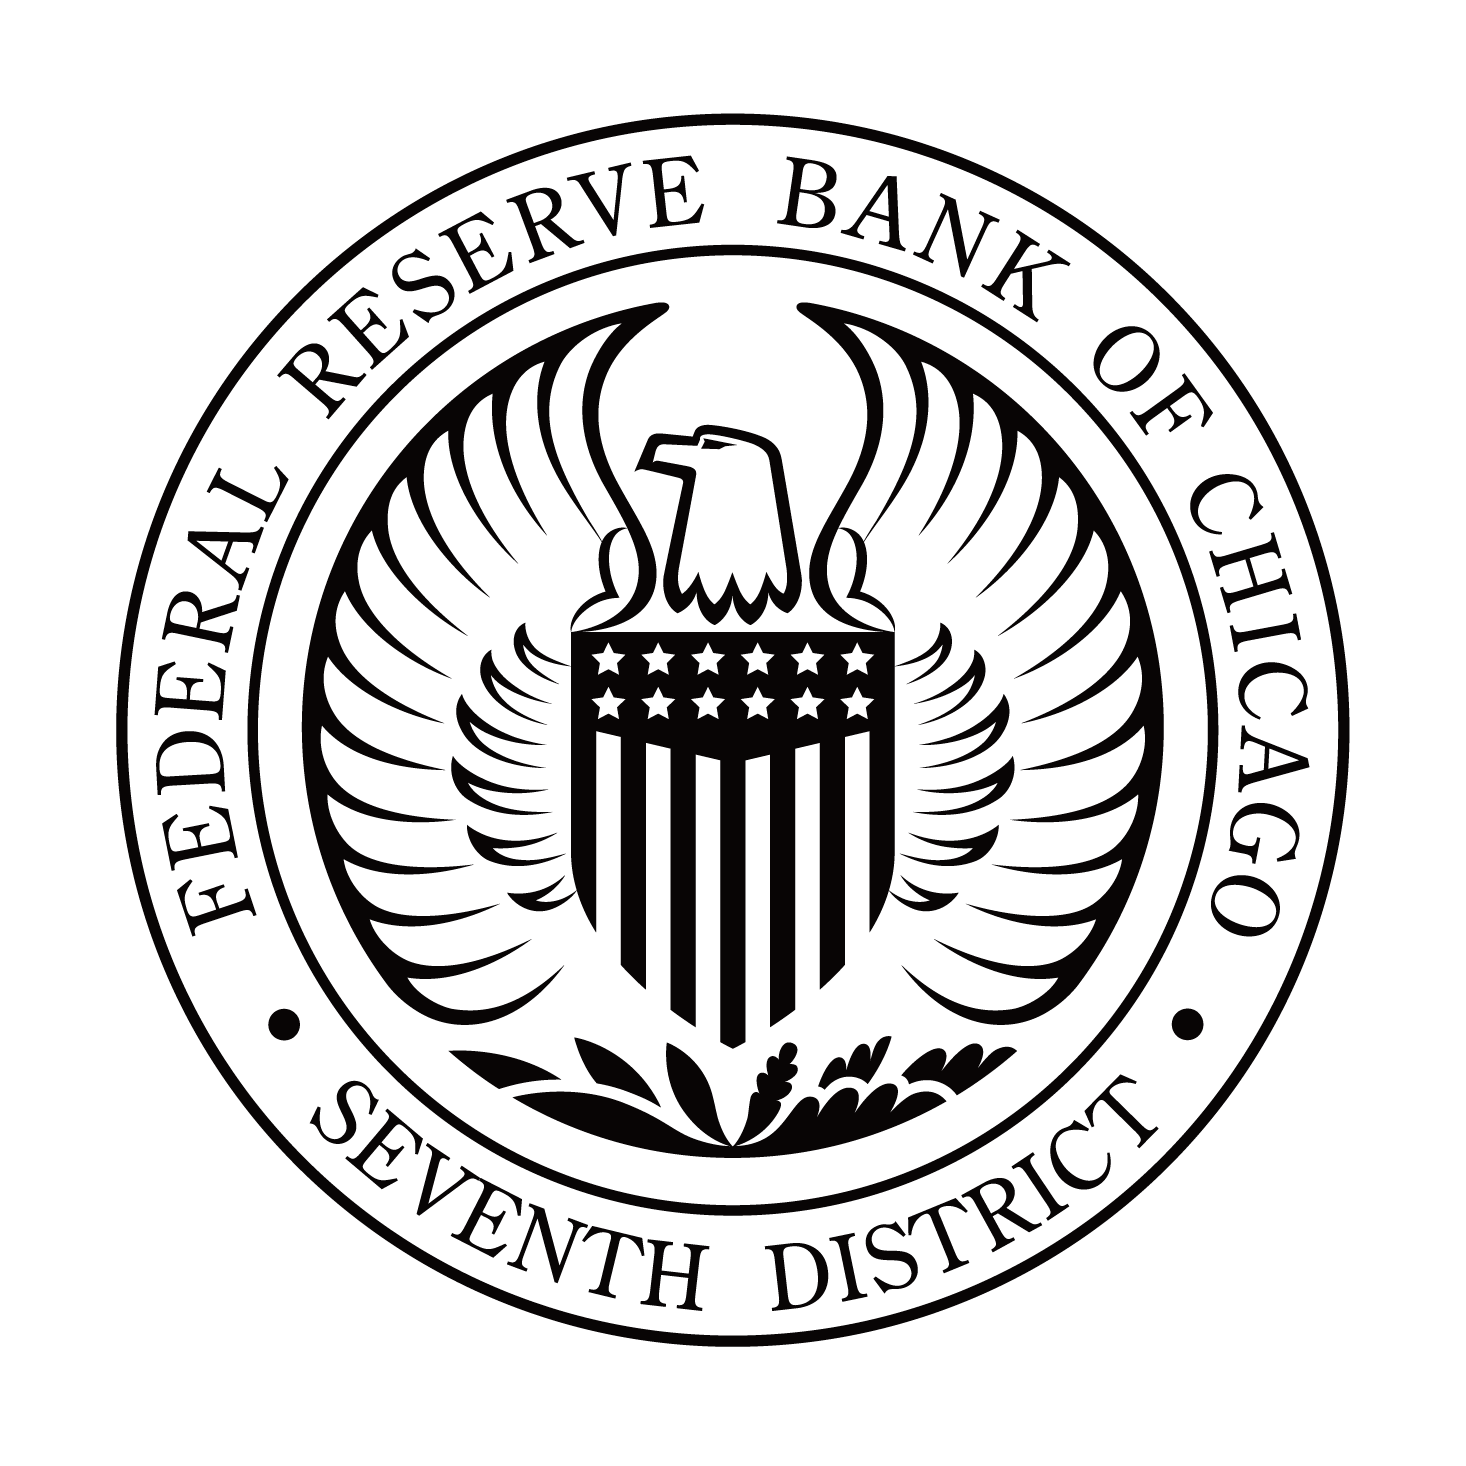 Chicago Fed's New Seal Design